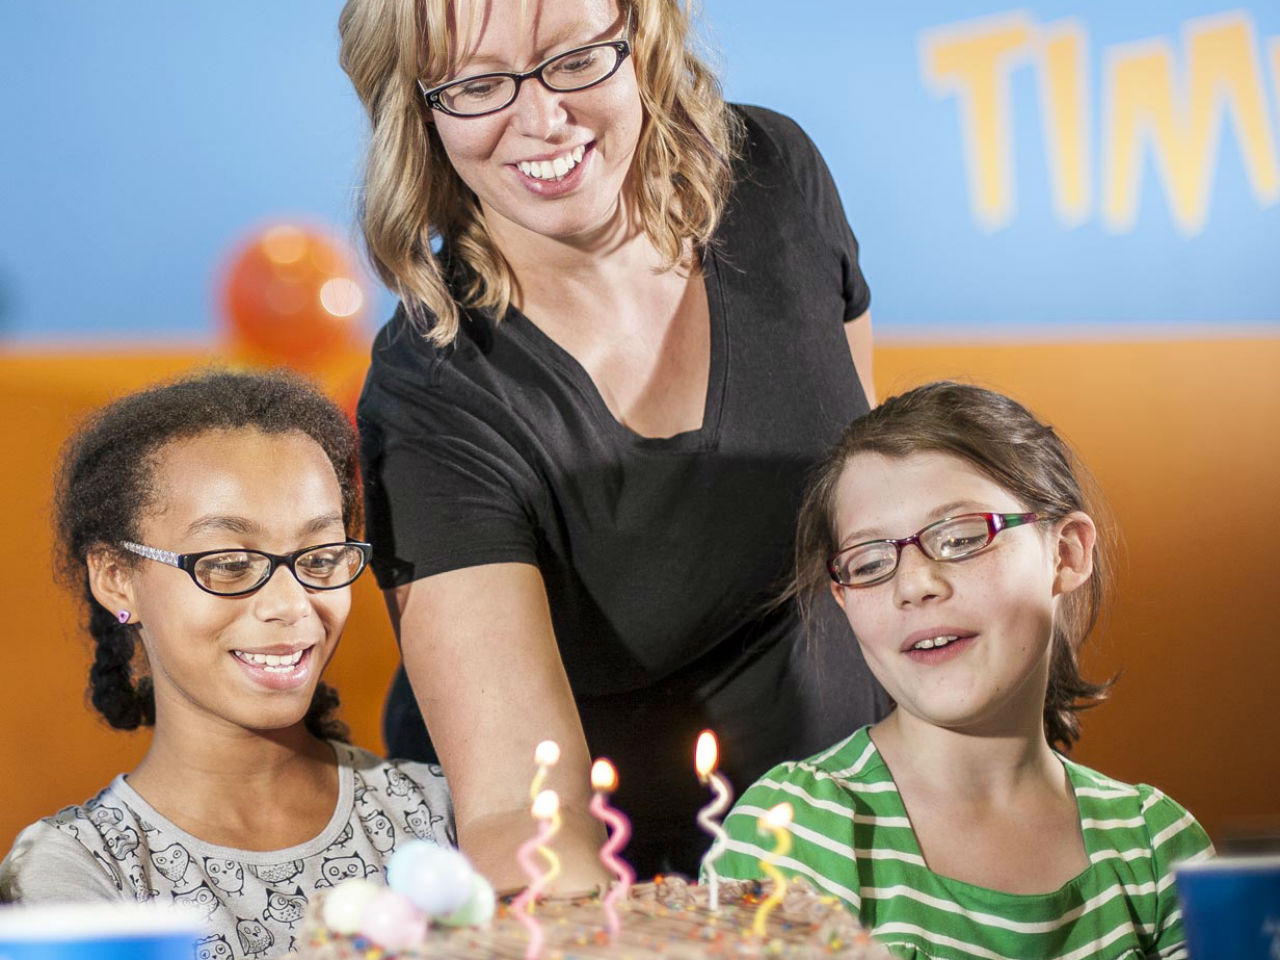 Awesome Birthday Party Places In Edmonton Todays Parent - Childrens birthday venues edmonton